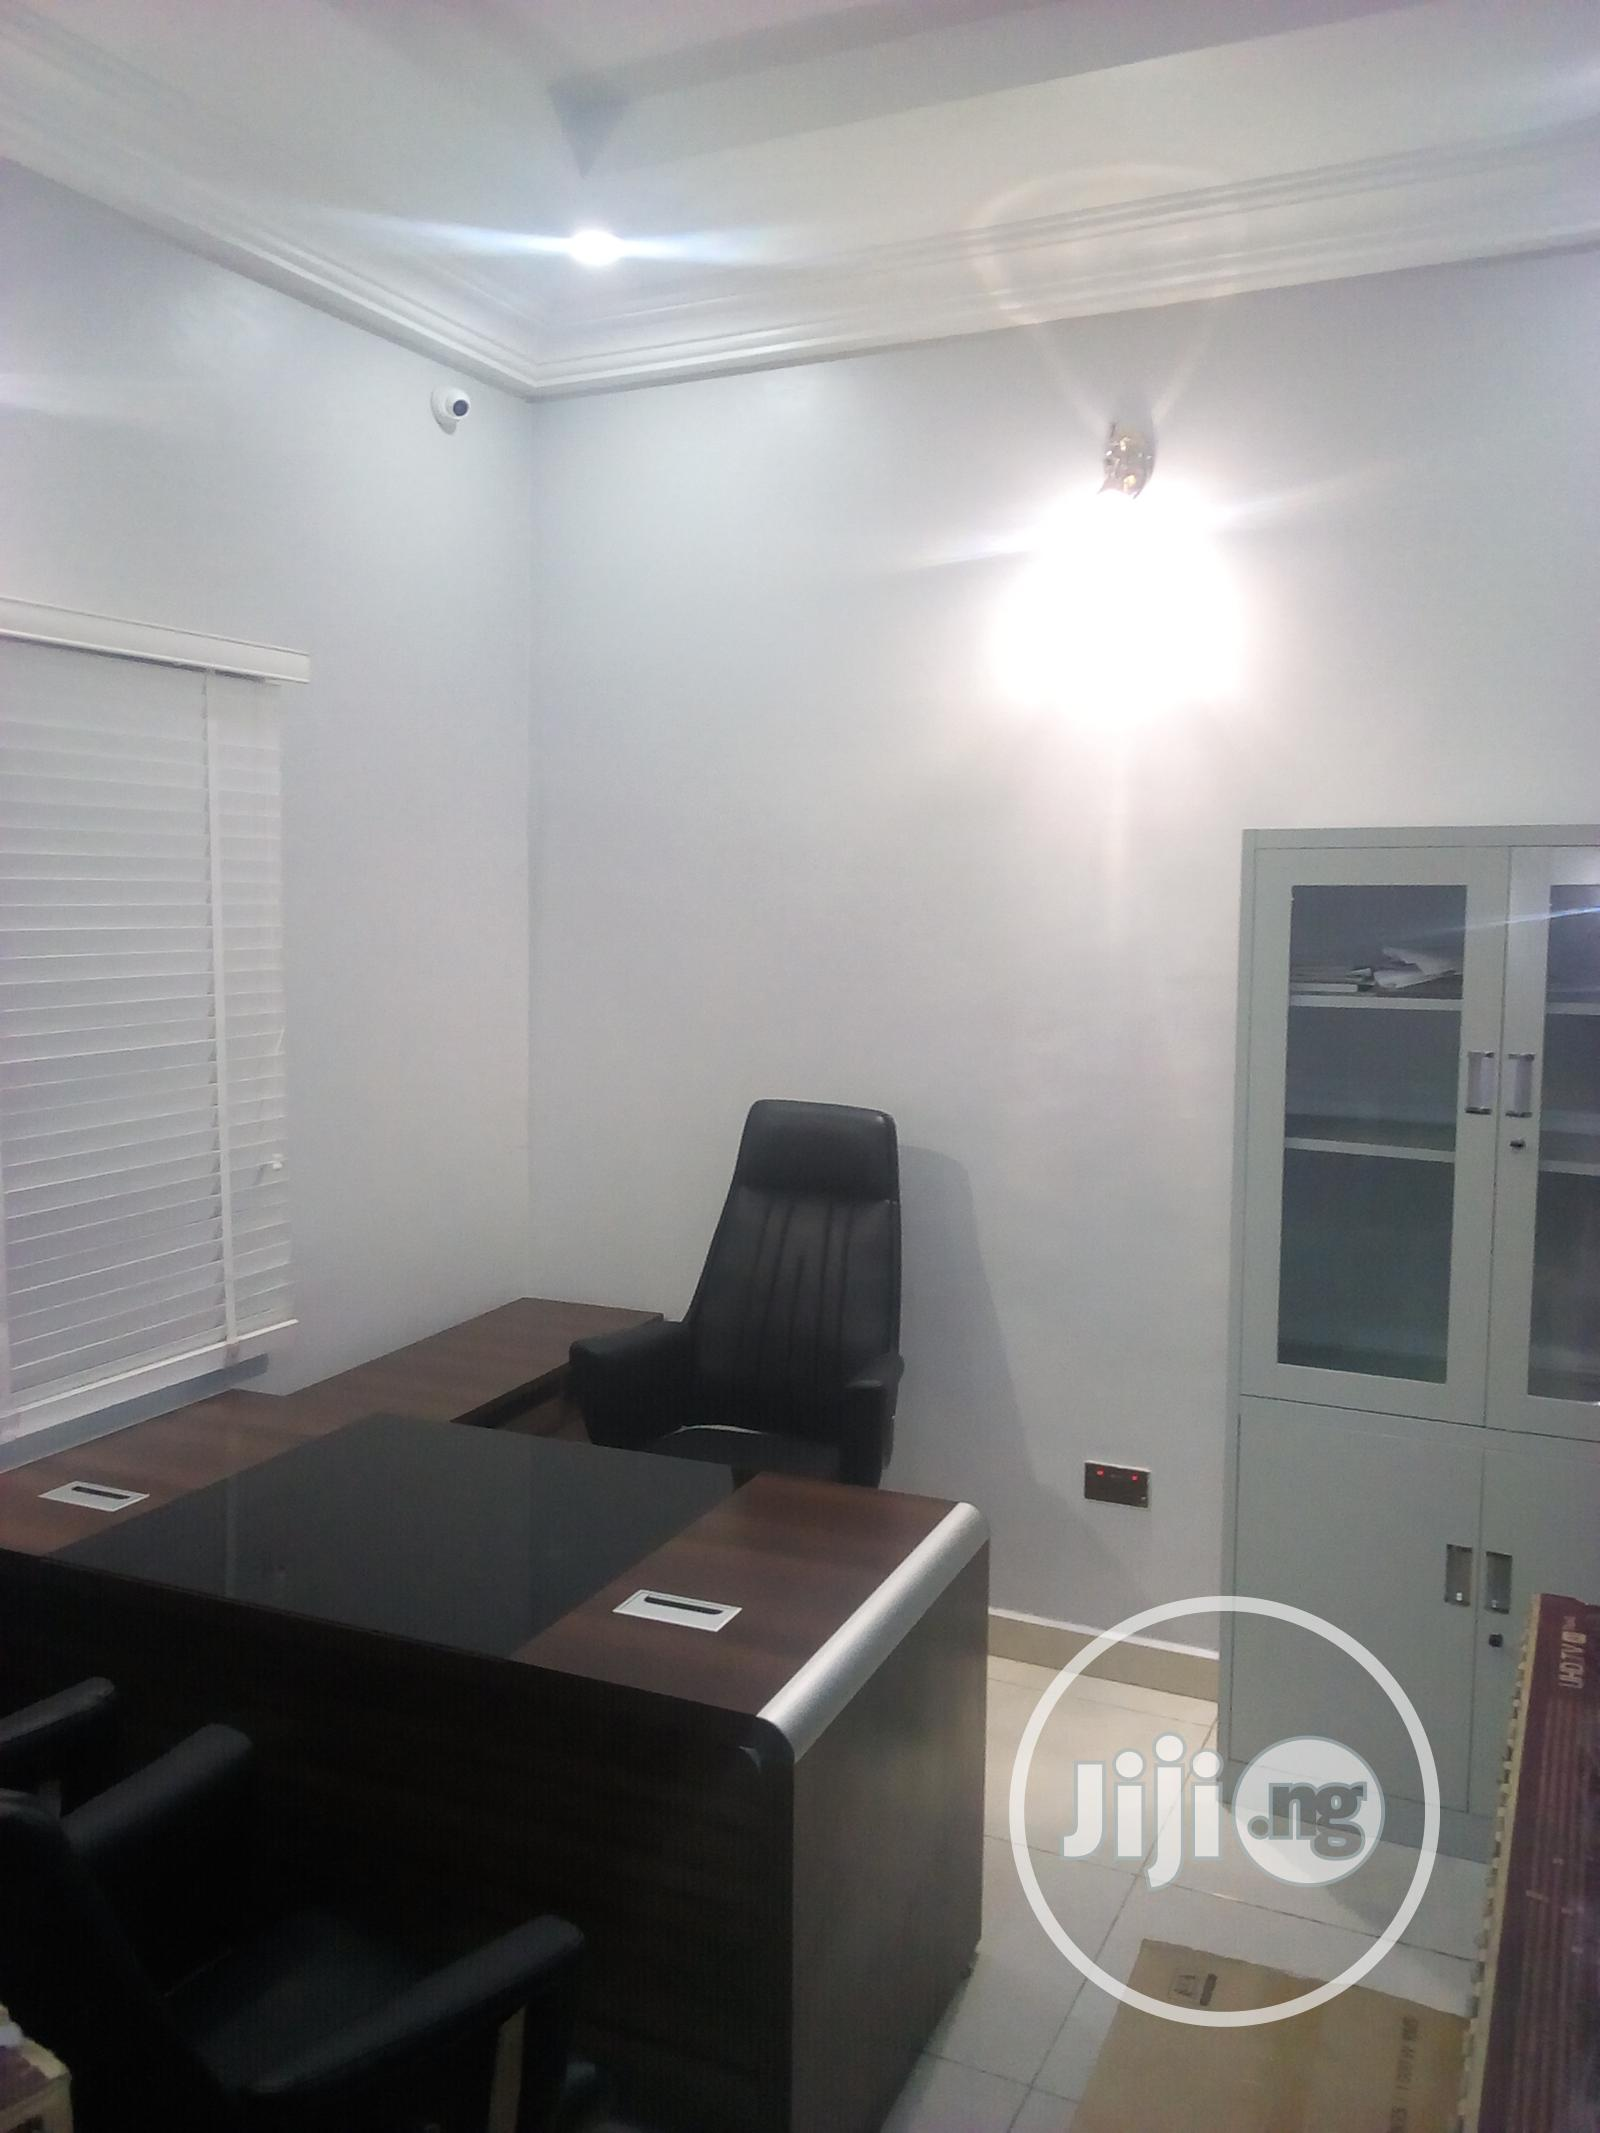 7 Bedrooms Fully Detached Duplex | Houses & Apartments For Sale for sale in Lugbe District, Abuja (FCT) State, Nigeria